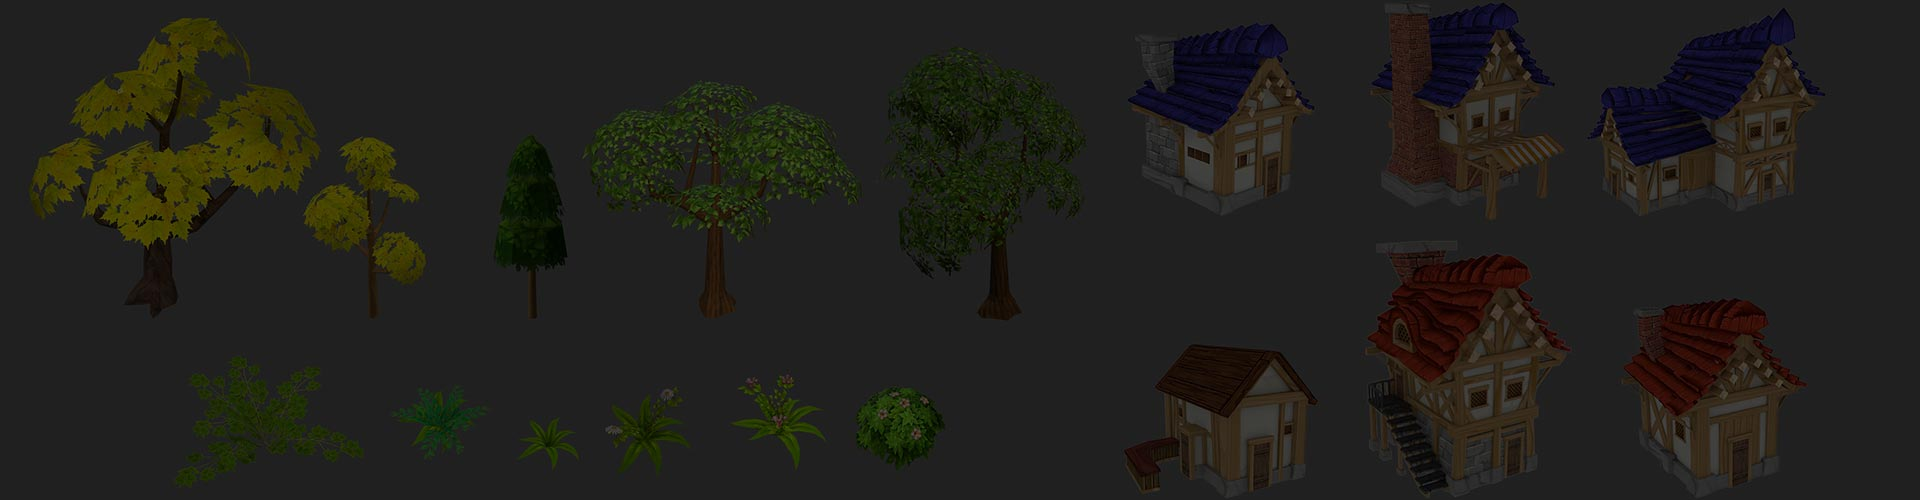 3D Low-Poly Handpained Asset for Game Development Company